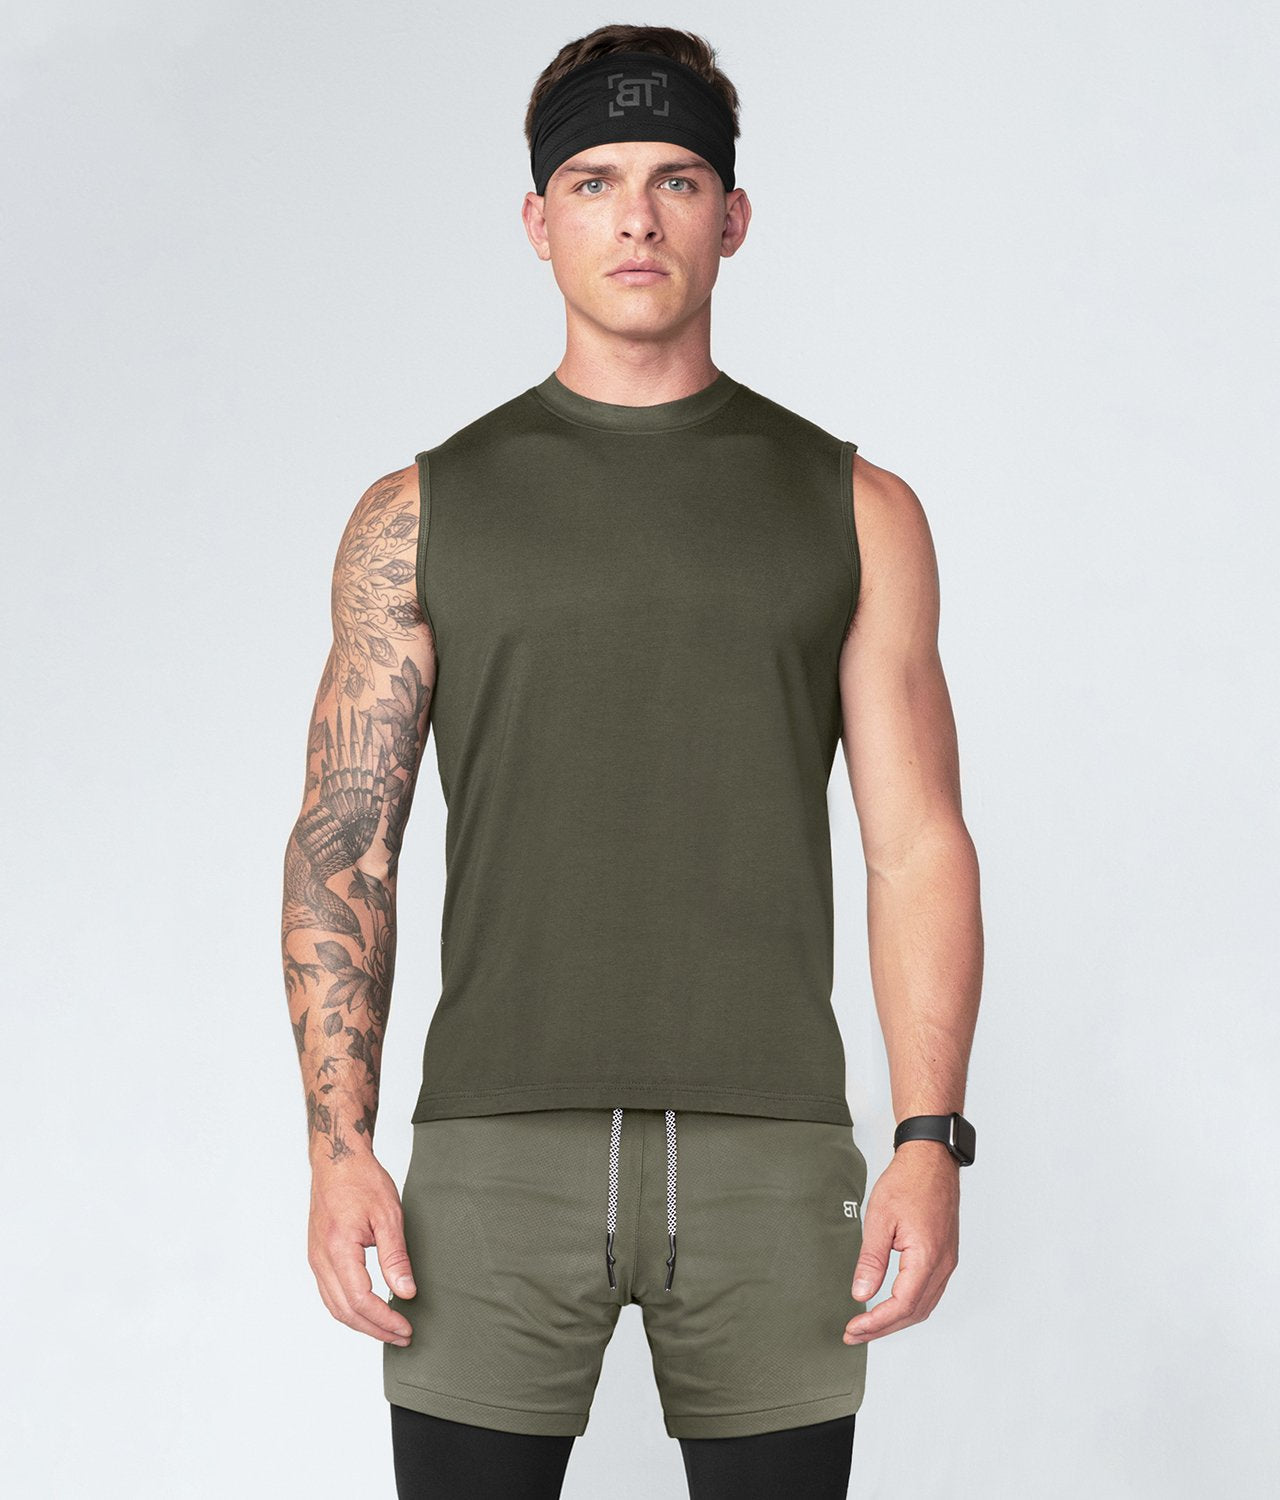 Born Tough United Kingdom Army Green Curved Hems Sleeveless Gym Workout Shirt For Men